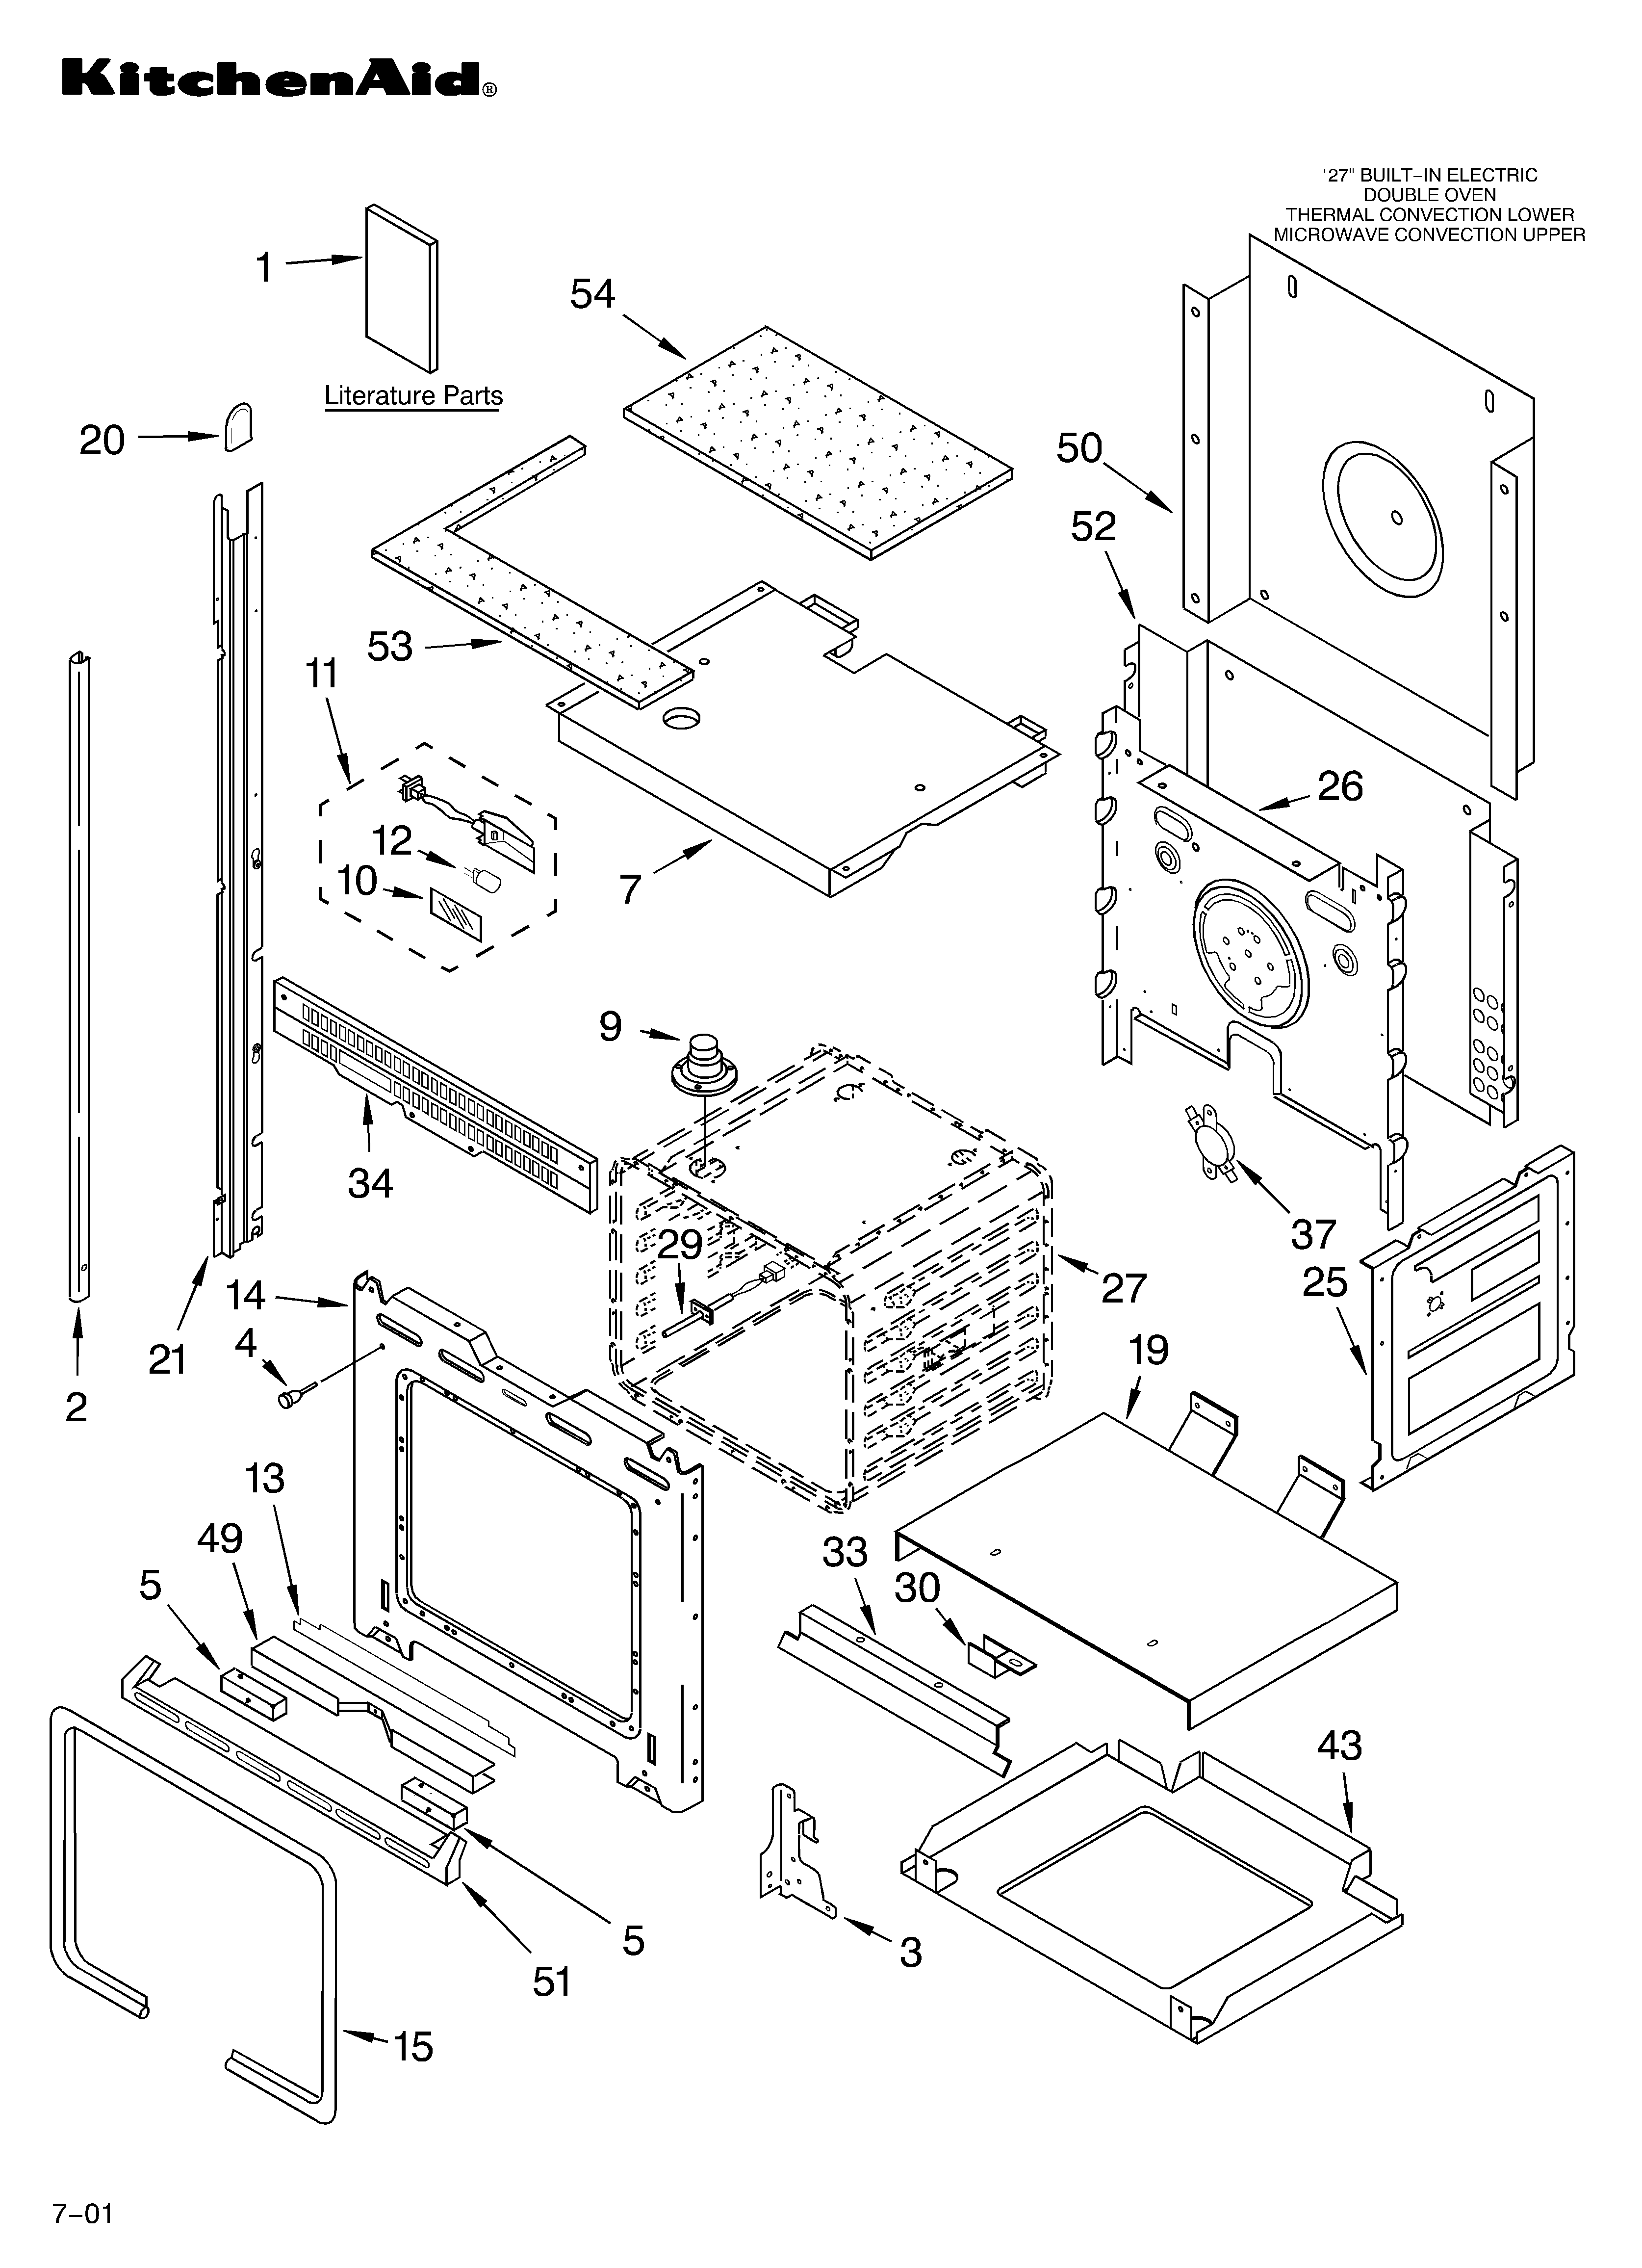 Wiring Diagram For Gsd6960n00ss